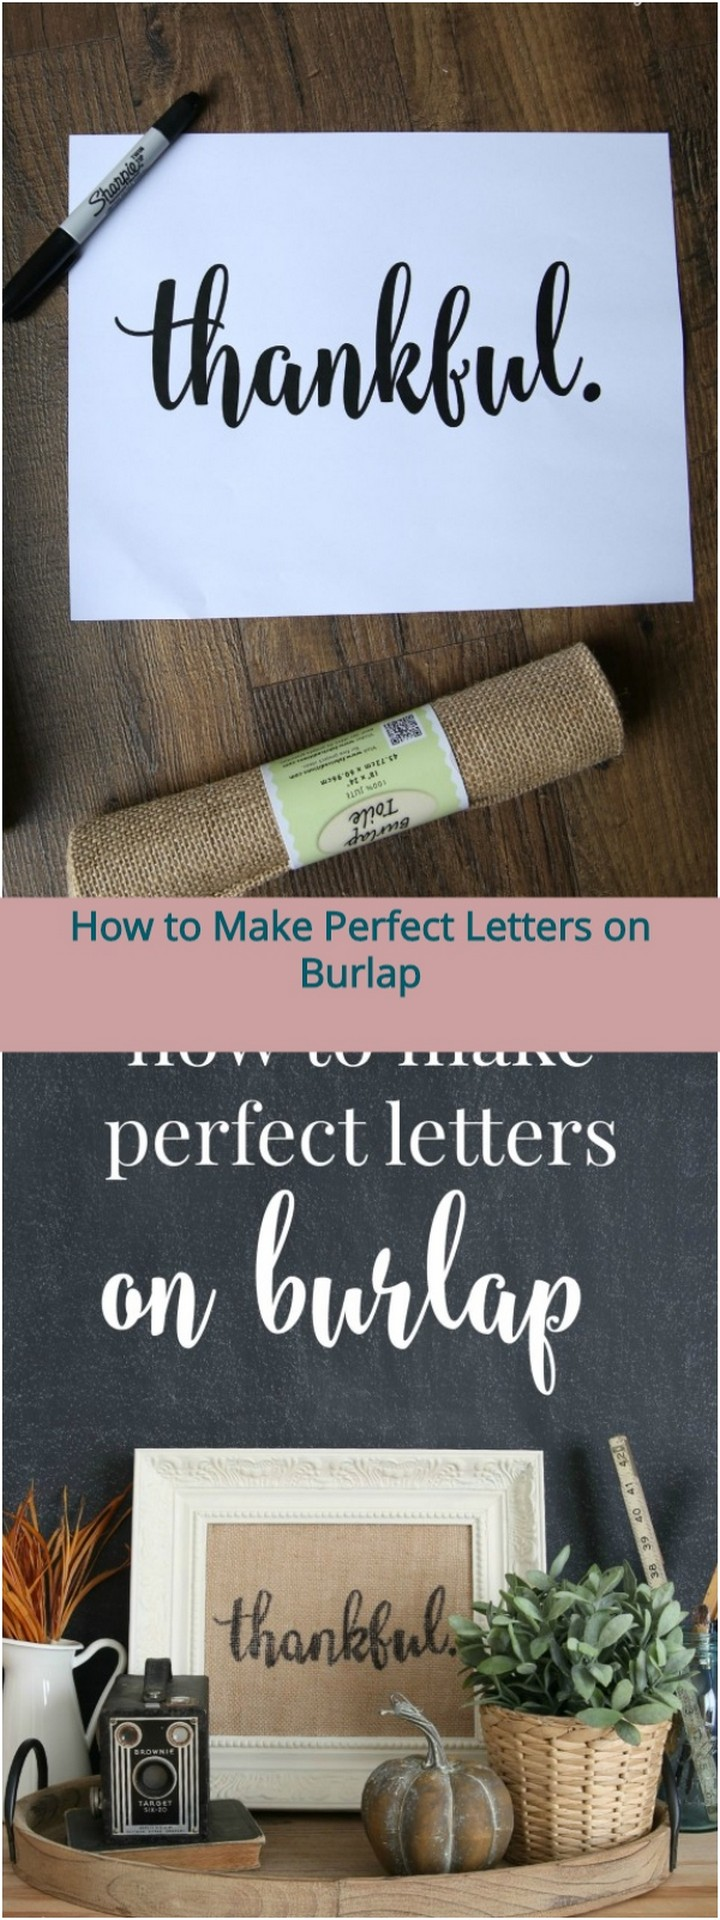 How to Make Perfect Letters on Burlap 1